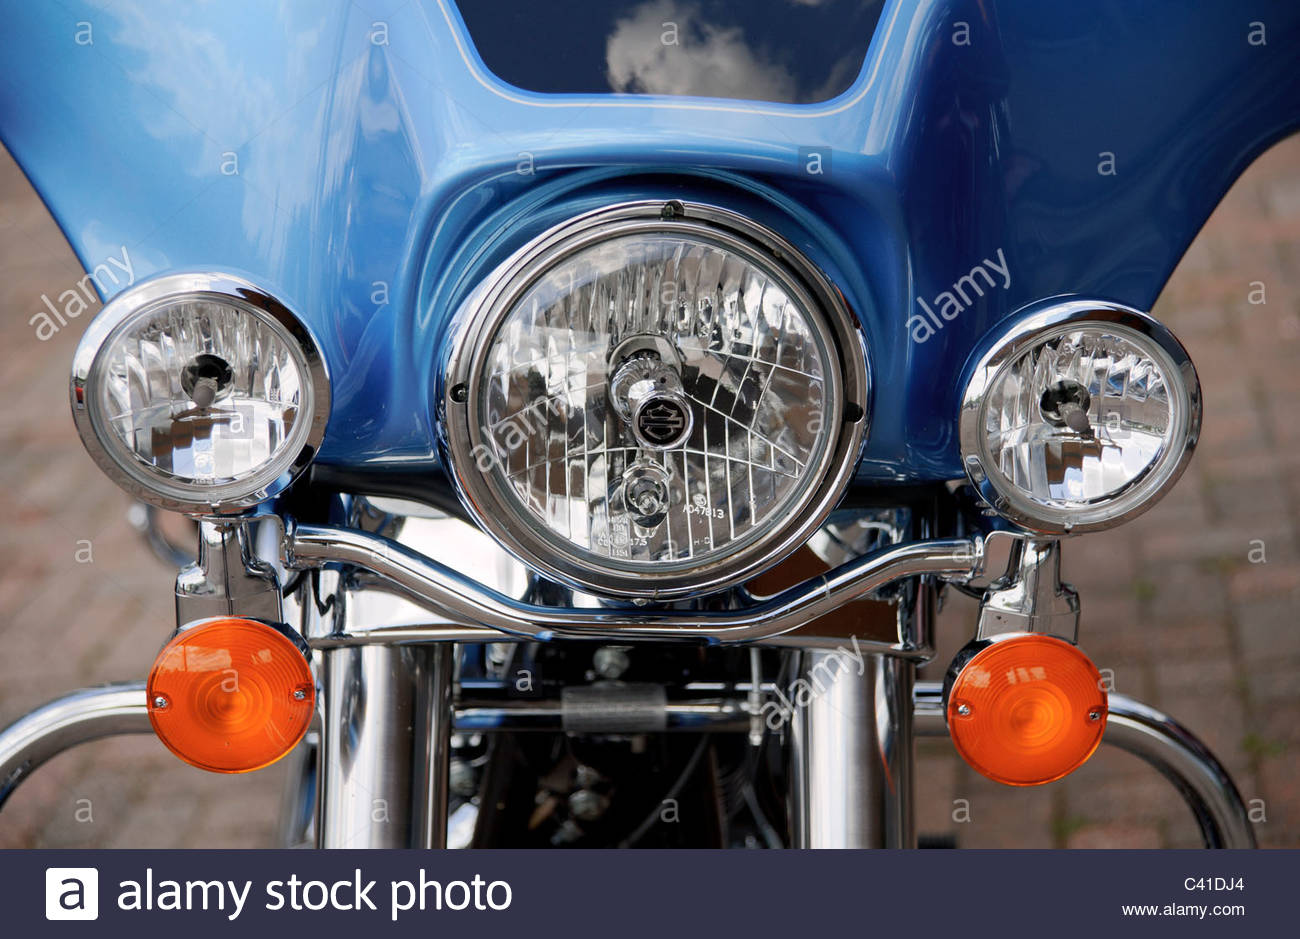 Turn Signals Stock Photos Images Alamy Detail Of And Headlights Harley Davidson Motorcycle Image